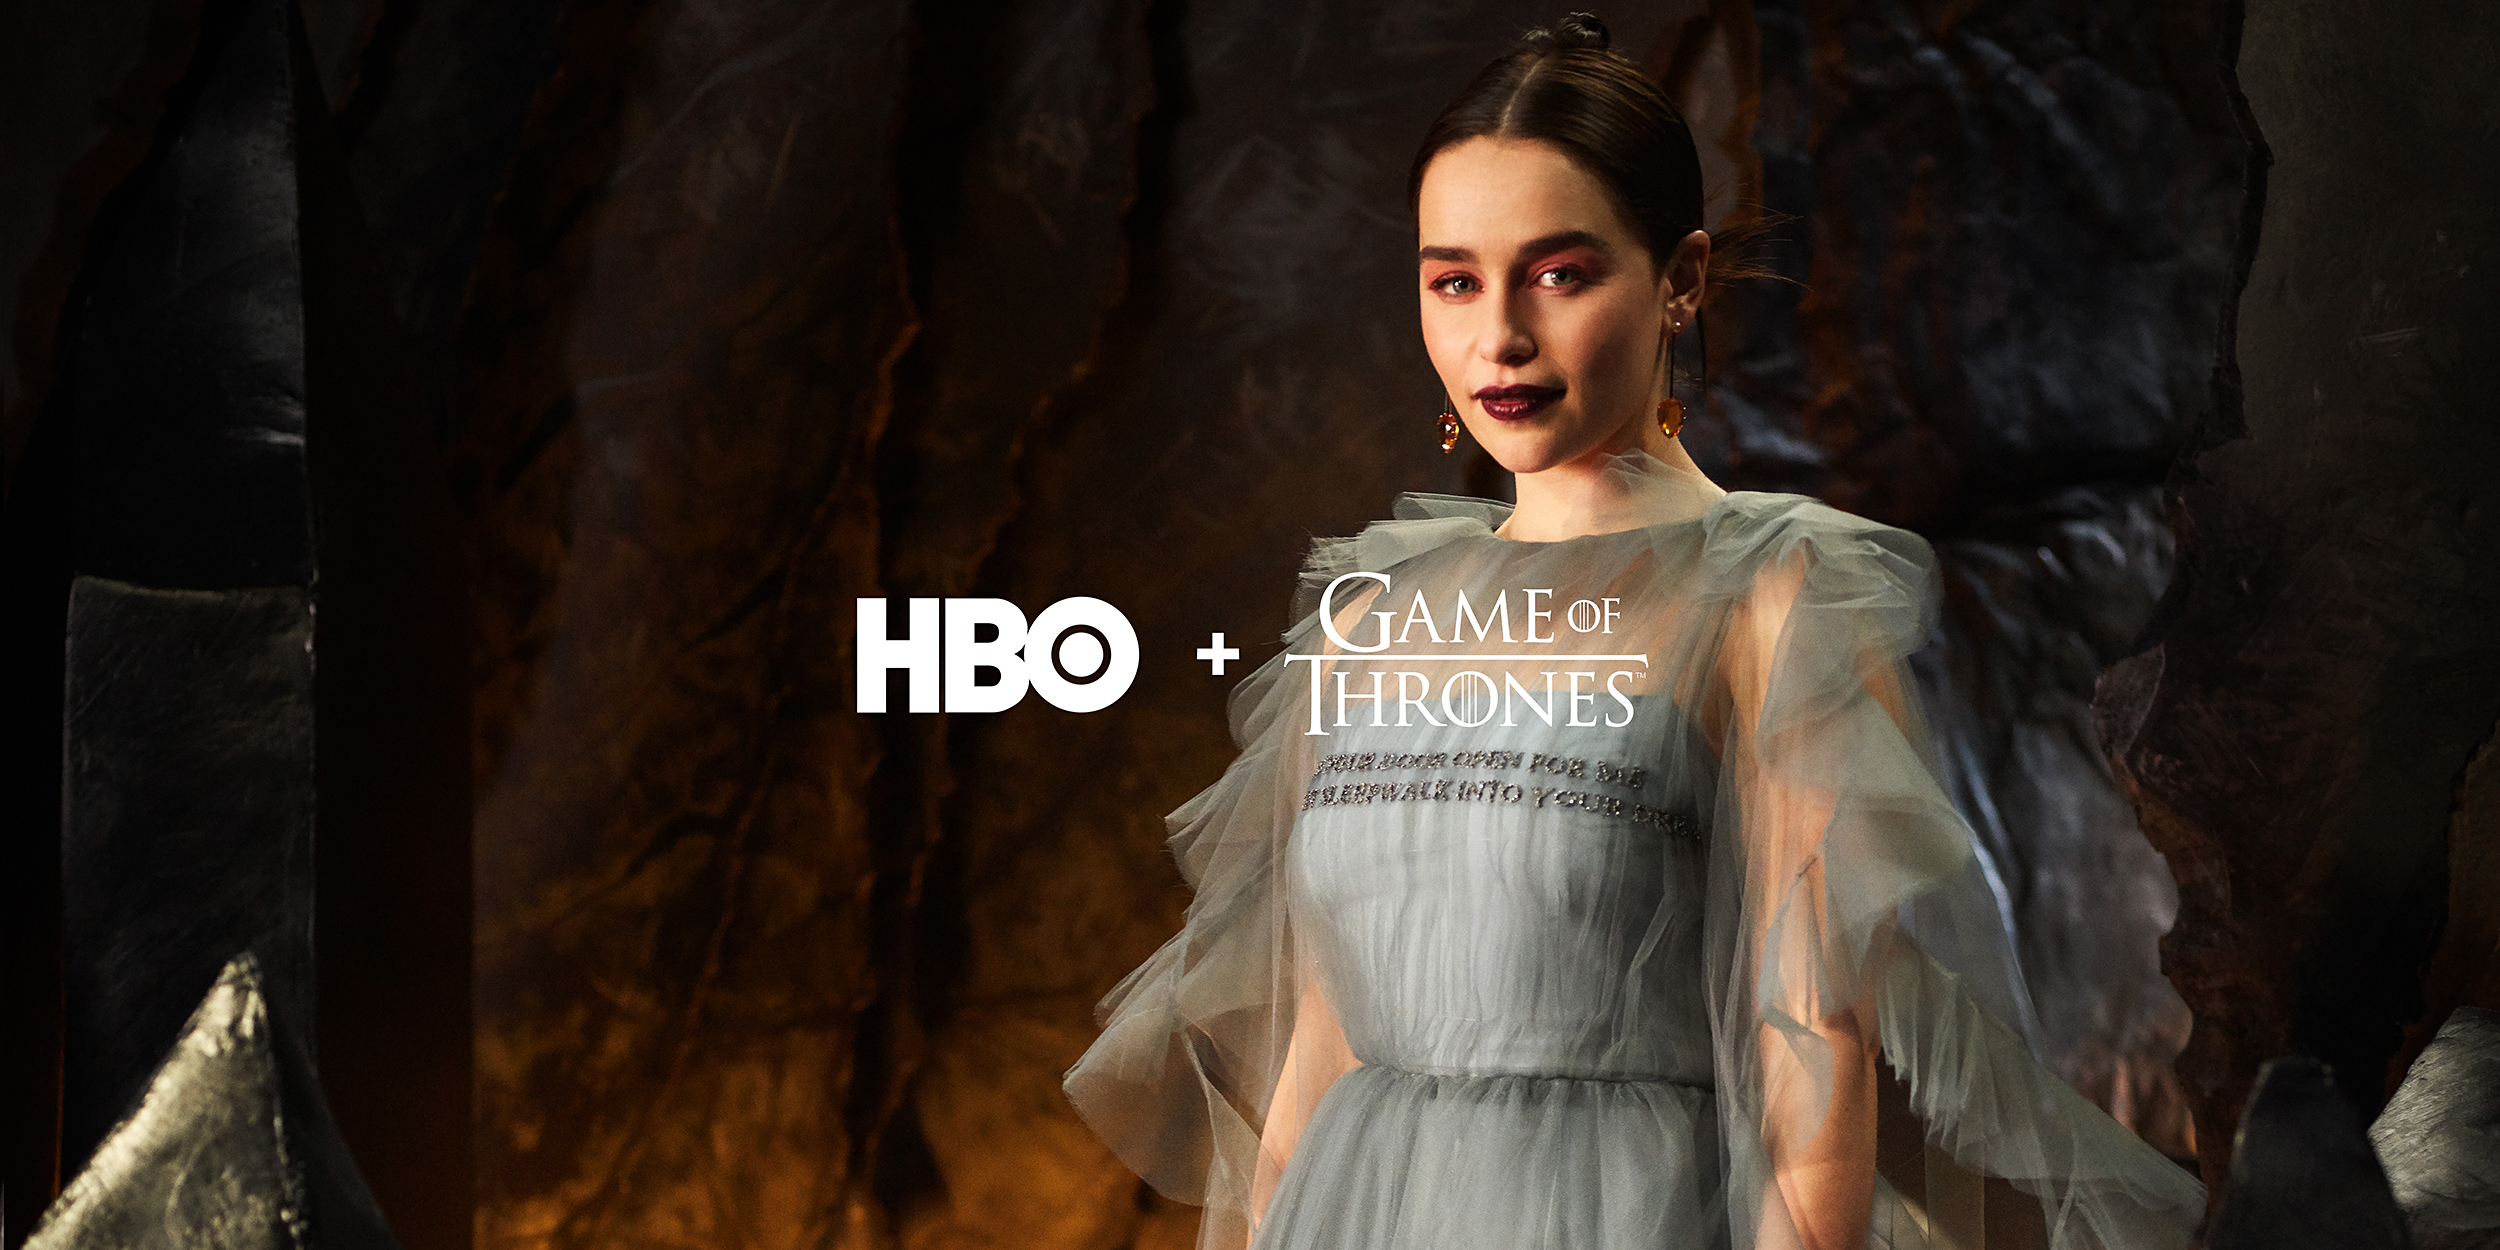 20190403_HBO_GameOfThrones_0111_frontpage2_2500px.jpg